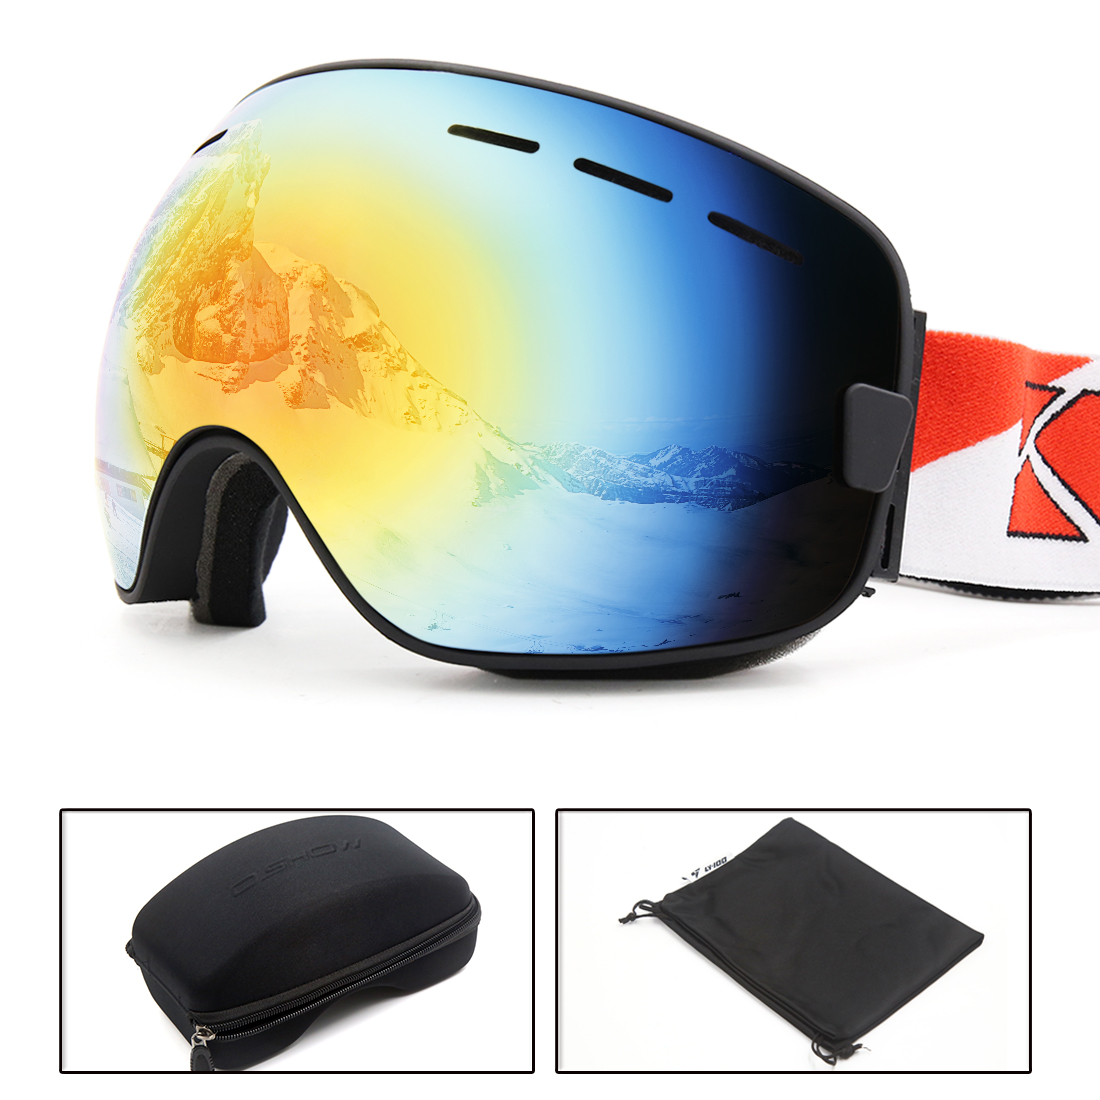 Uxcell Ski Snowboard Goggles Anti-fog UV400 Protection Black with Case by